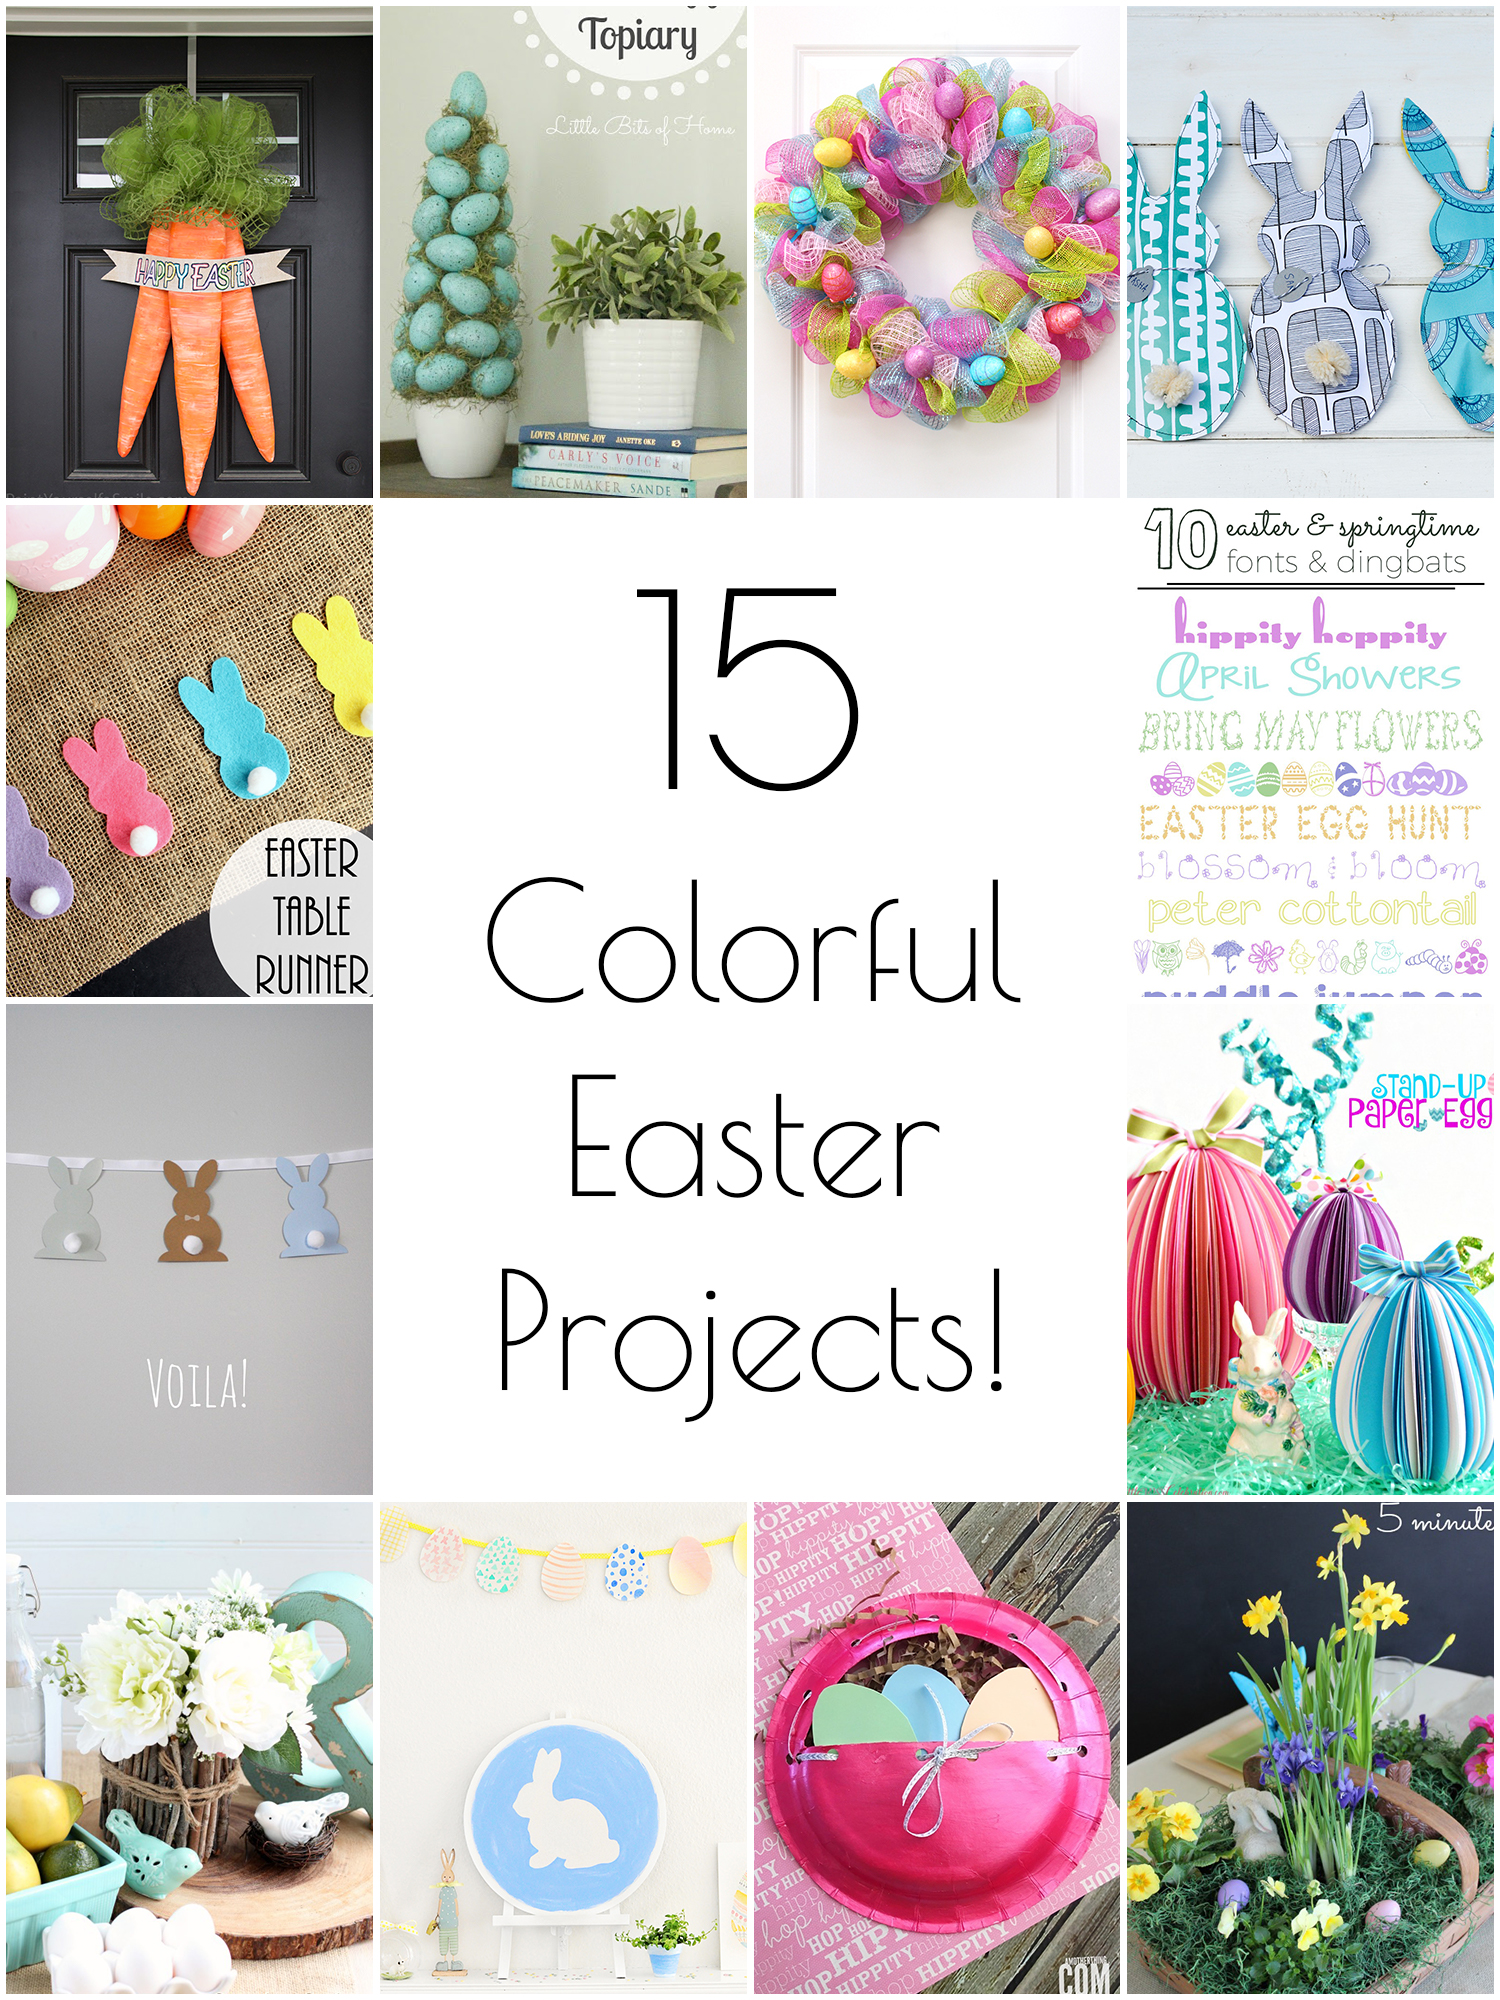 15 colorful Easter projects